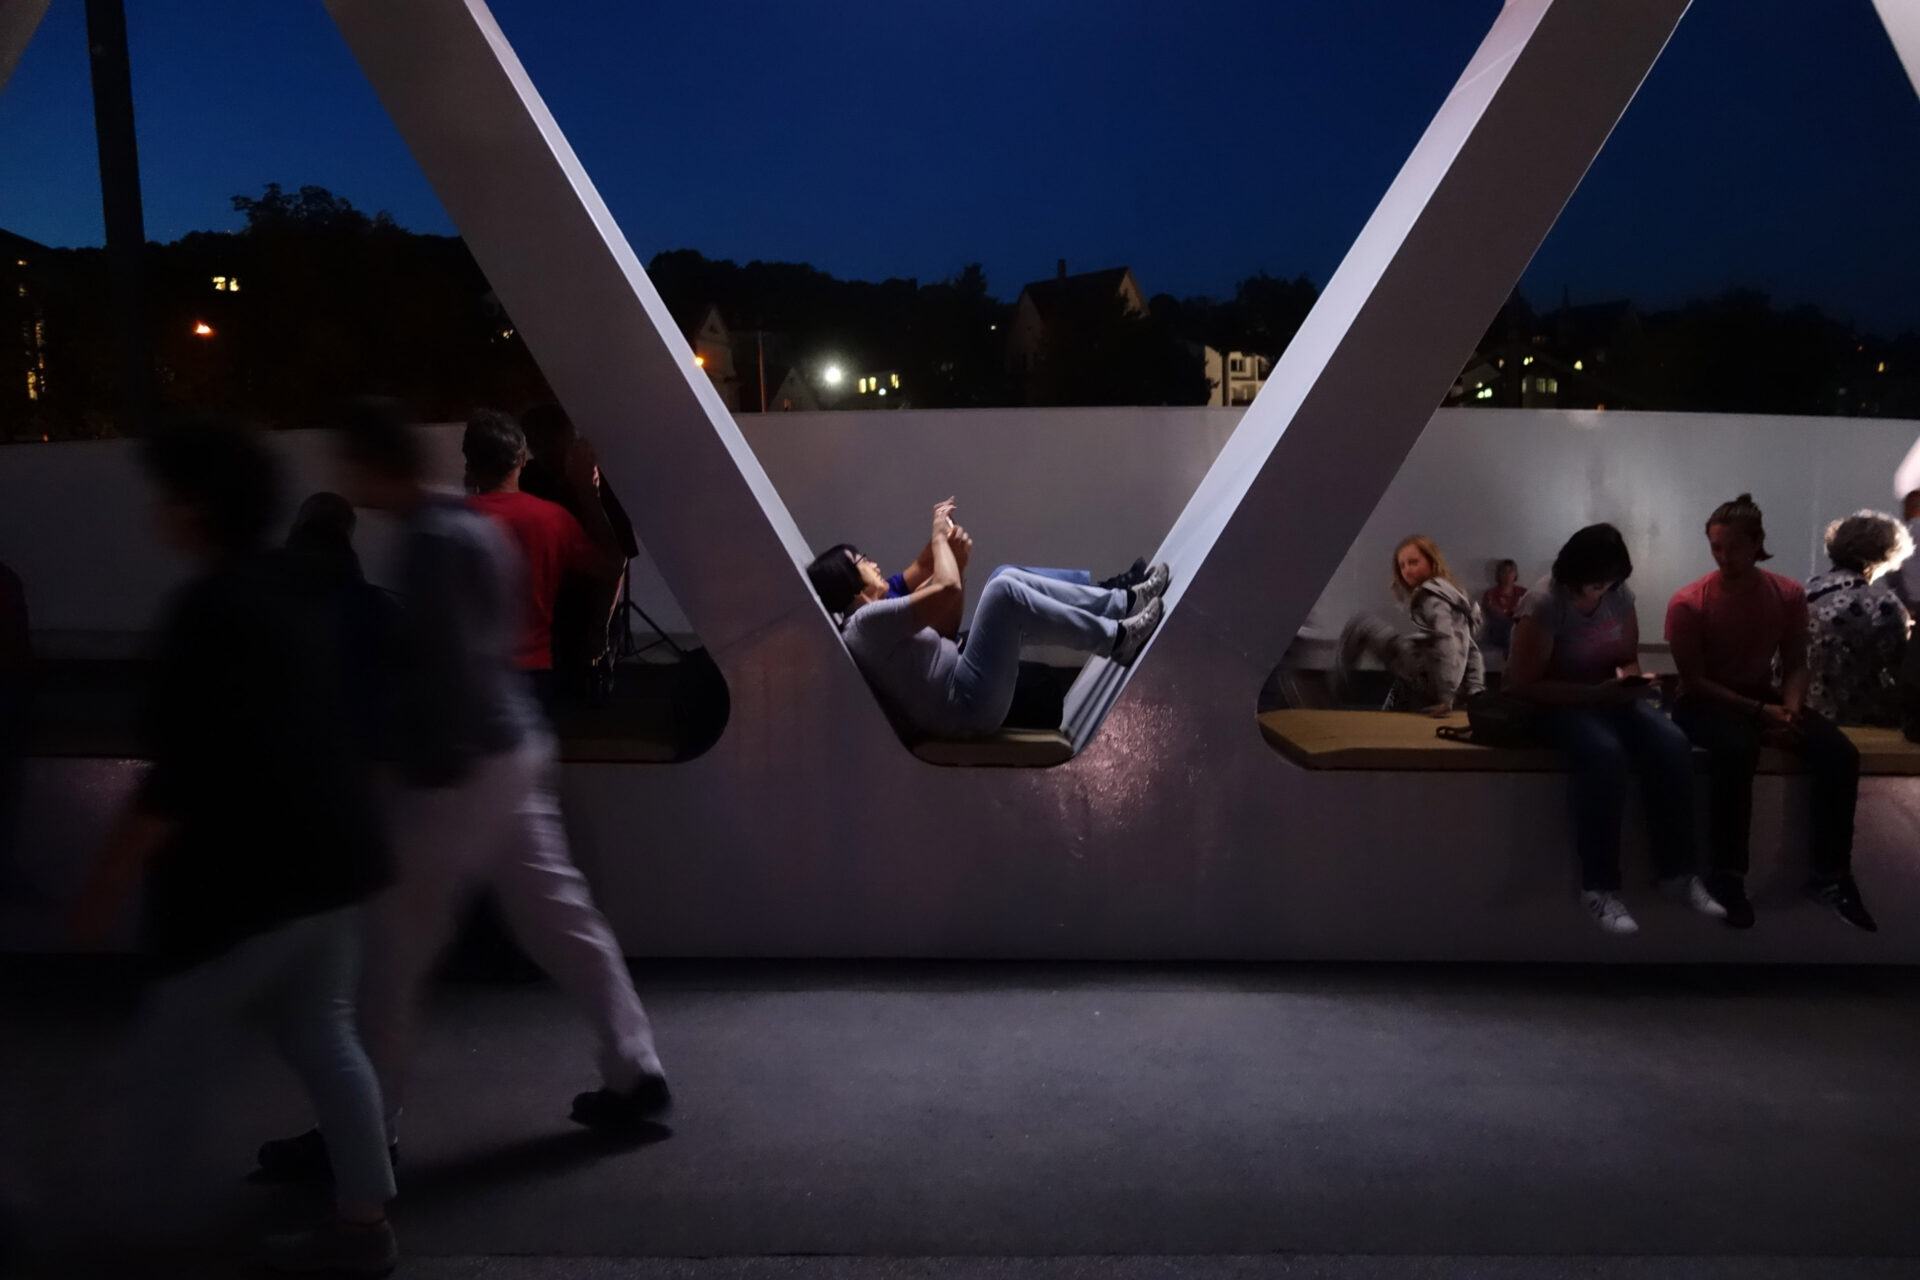 Two people sitting in archway of bridge central seating area looking at phone at night